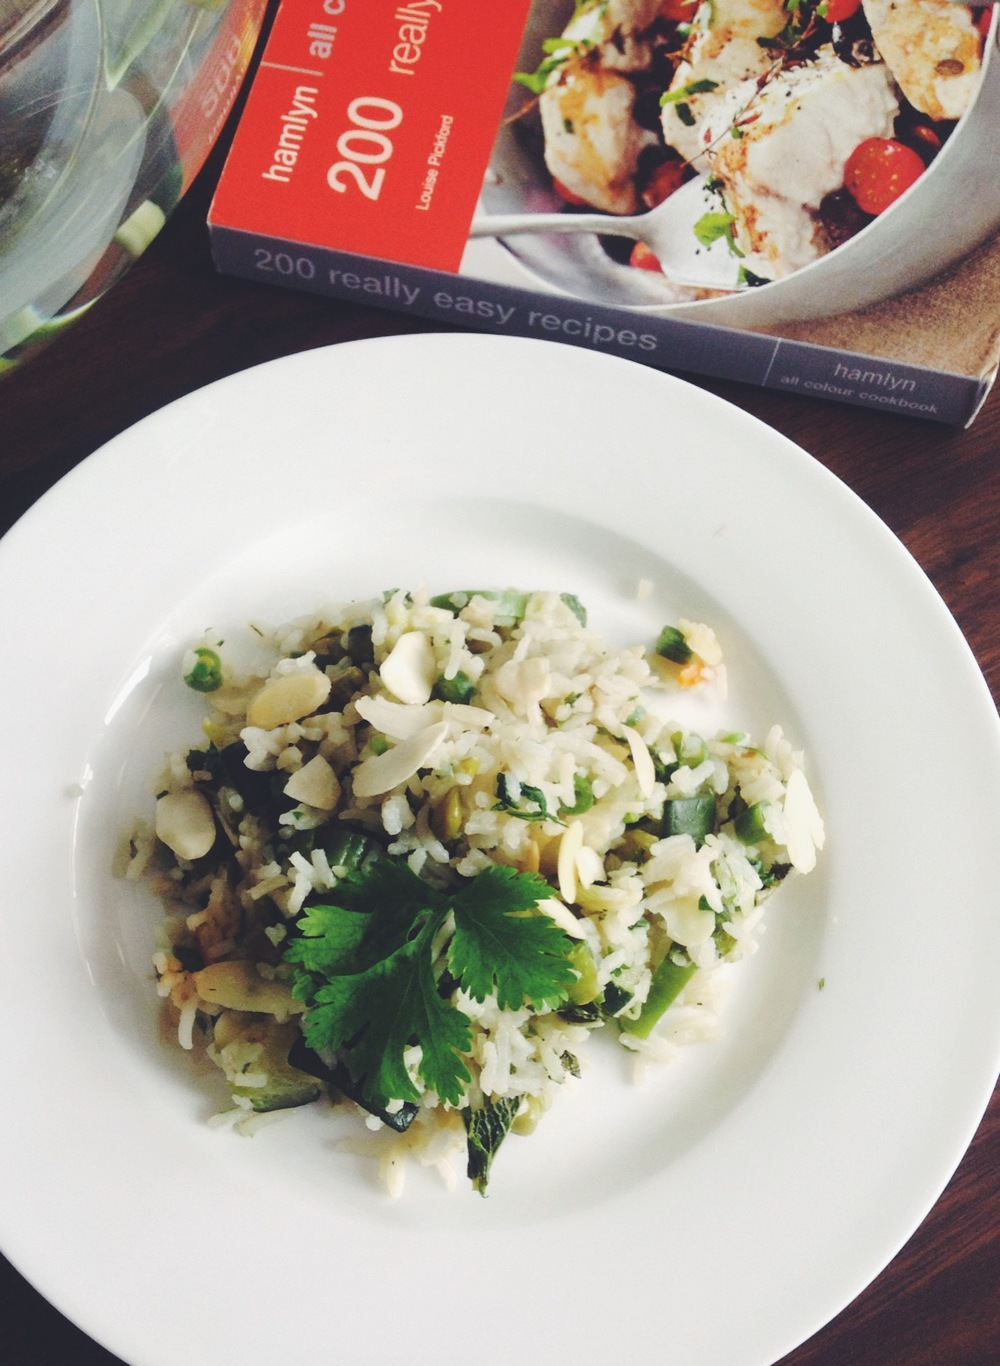 the healthy and yummy spring vegetable and herb pilaf